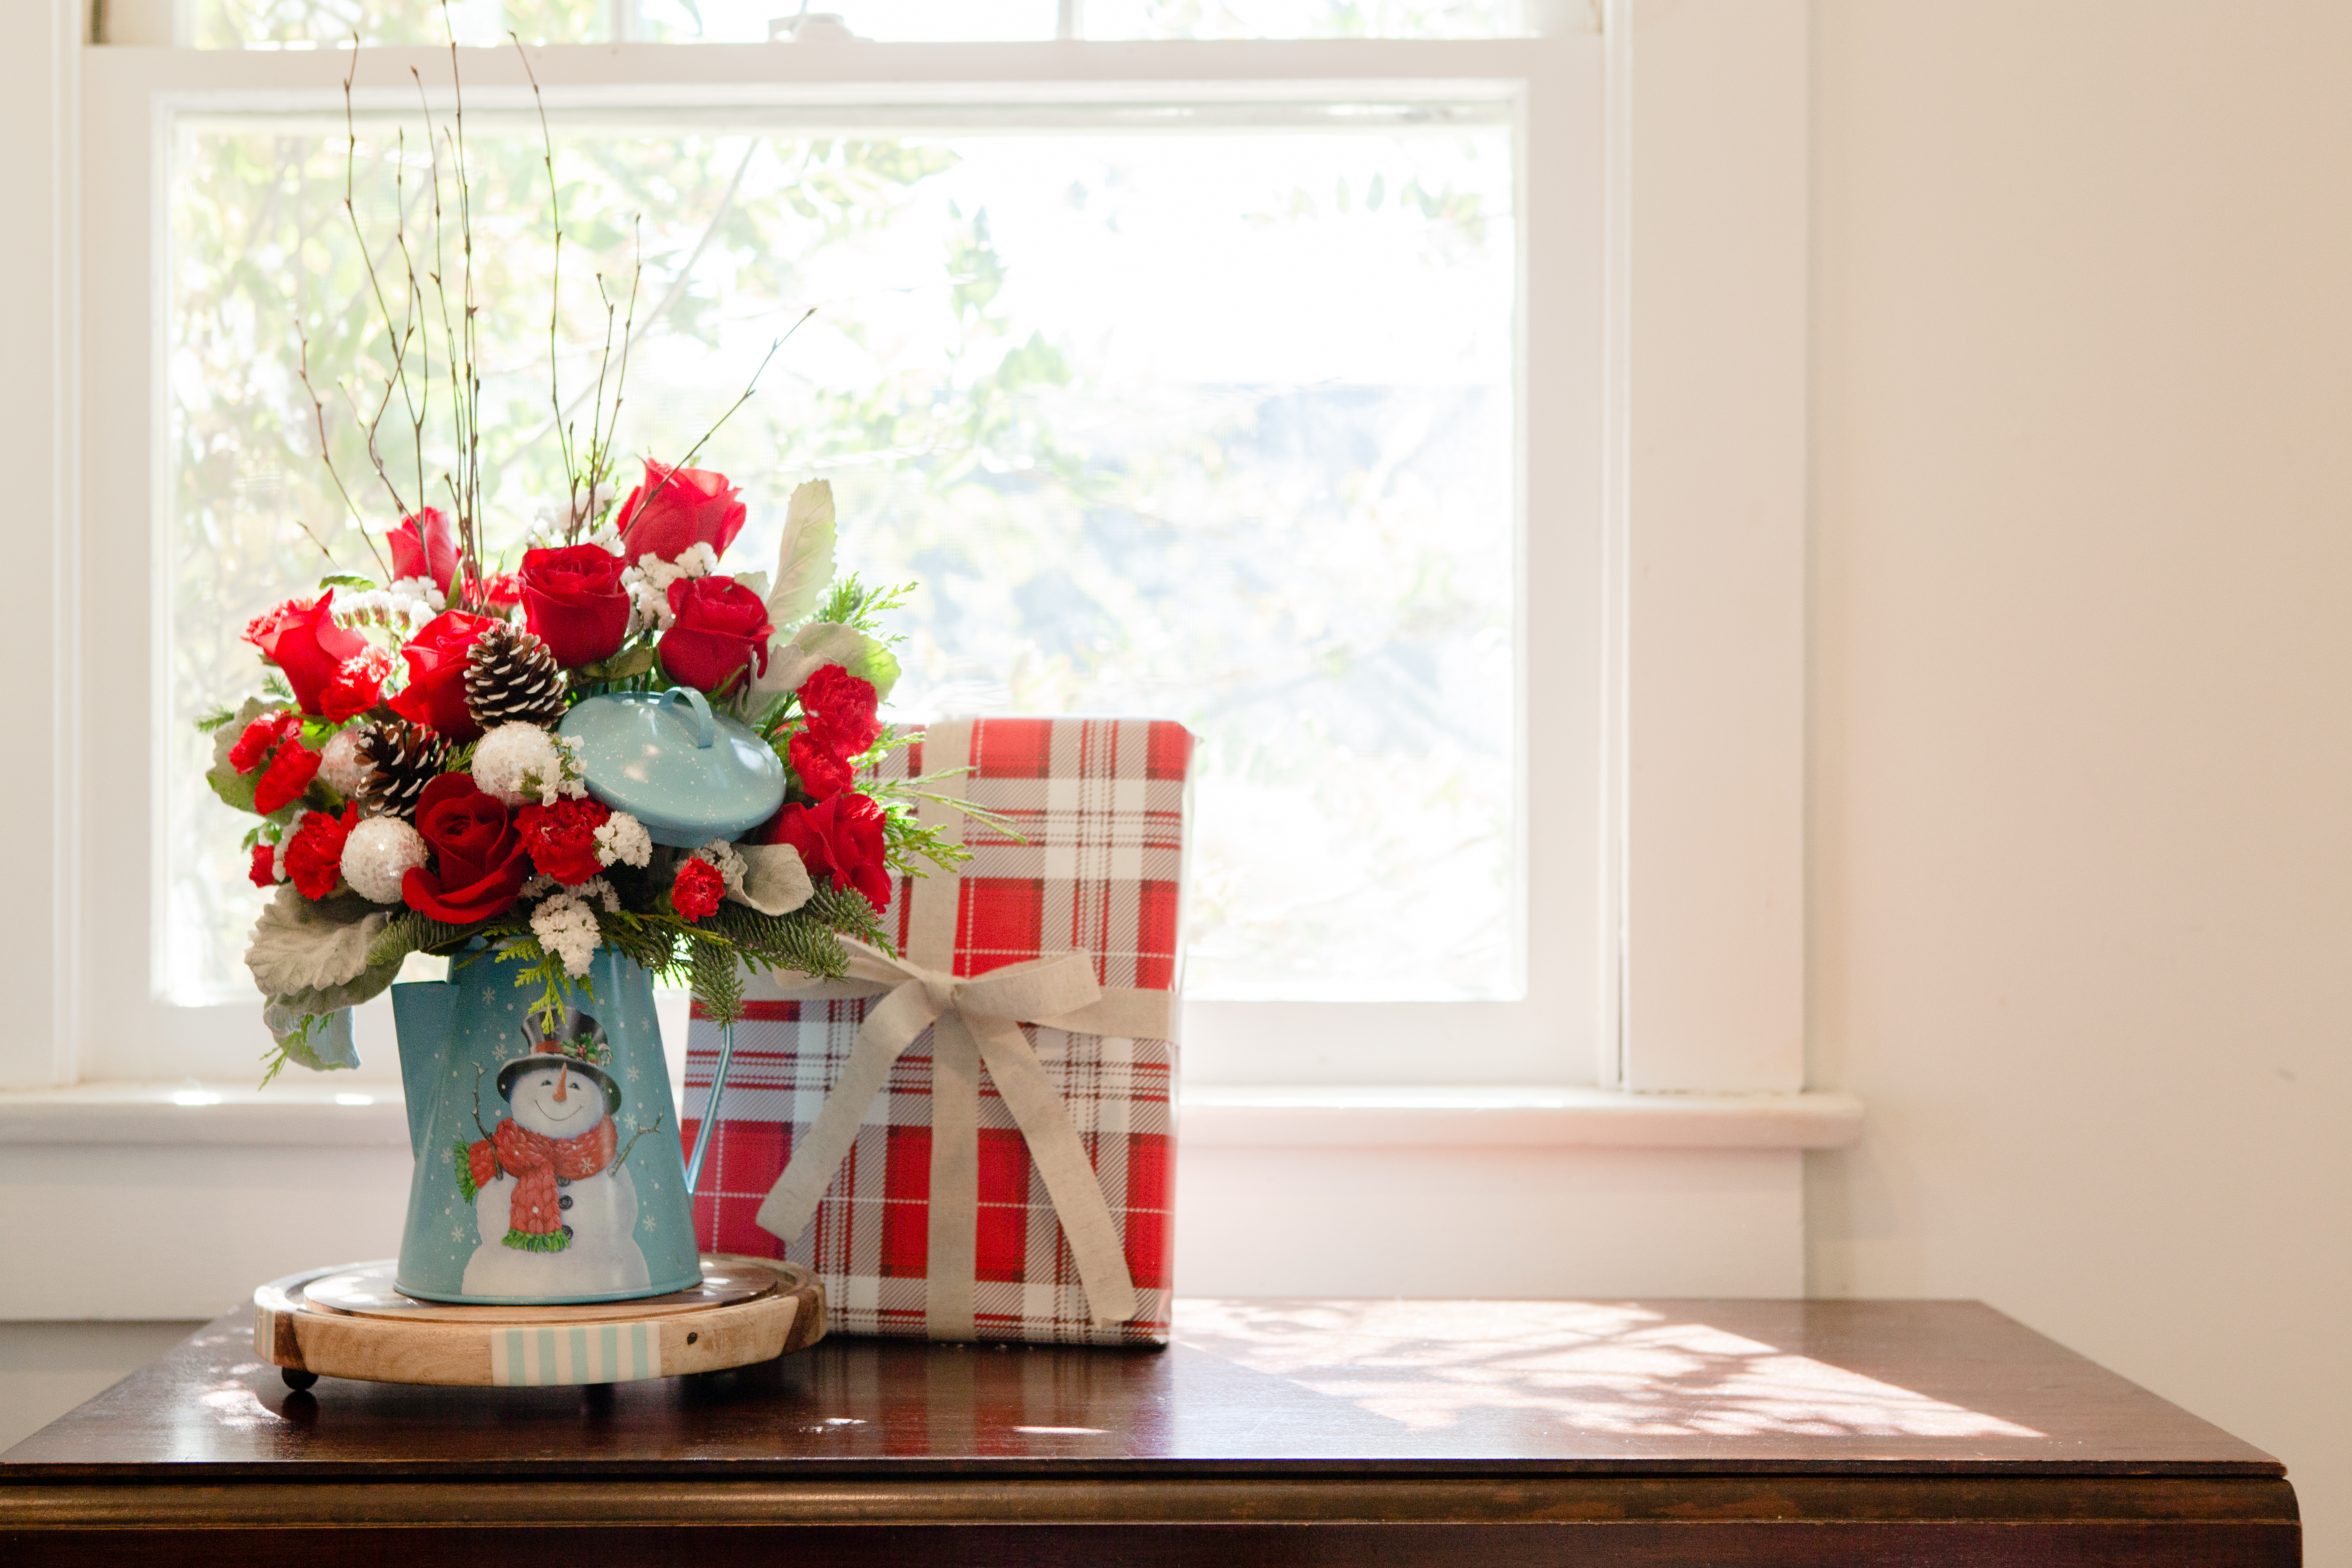 Red roses, red carnations, and greenery in a blue snowman watercan vase with a present